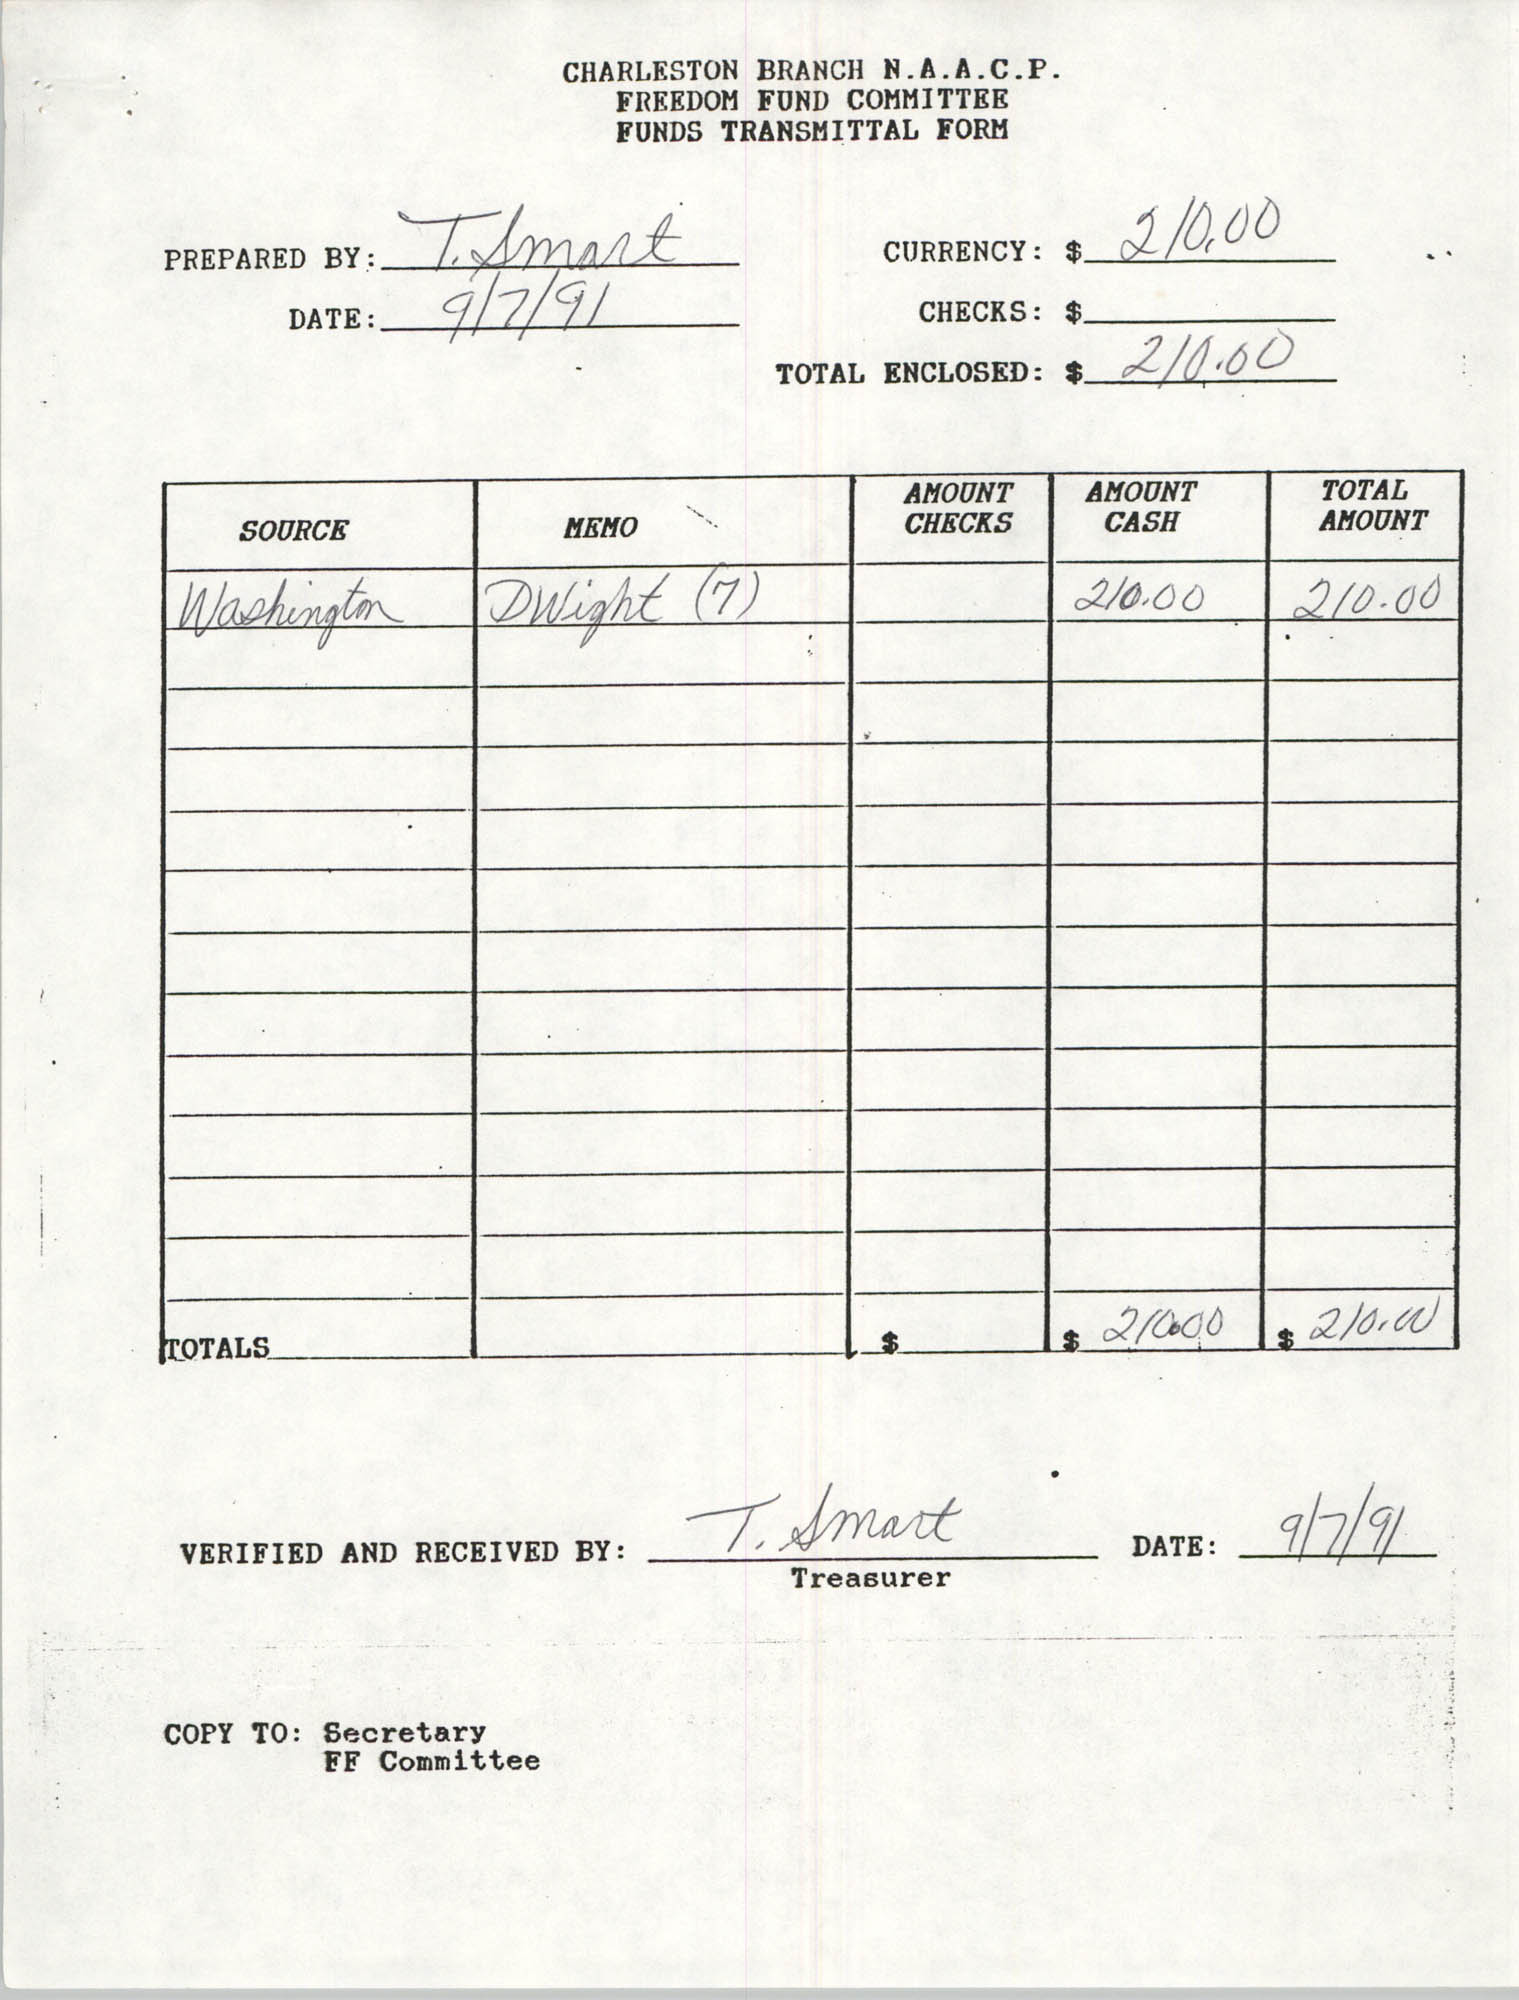 Charleston Branch of the NAACP Funds Transmittal Forms, September 1991, Page 26